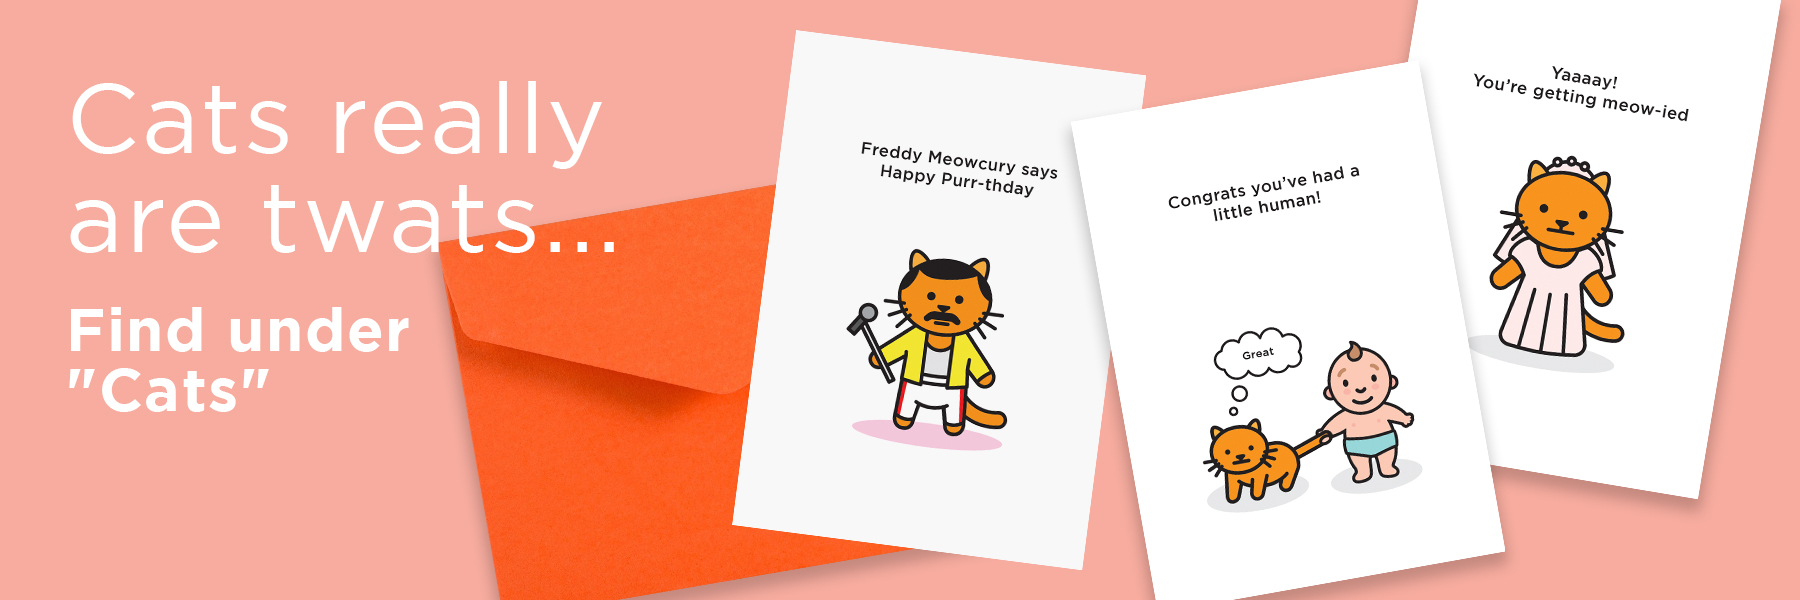 Cat Cards | Rude, Funny, Offensive Cards